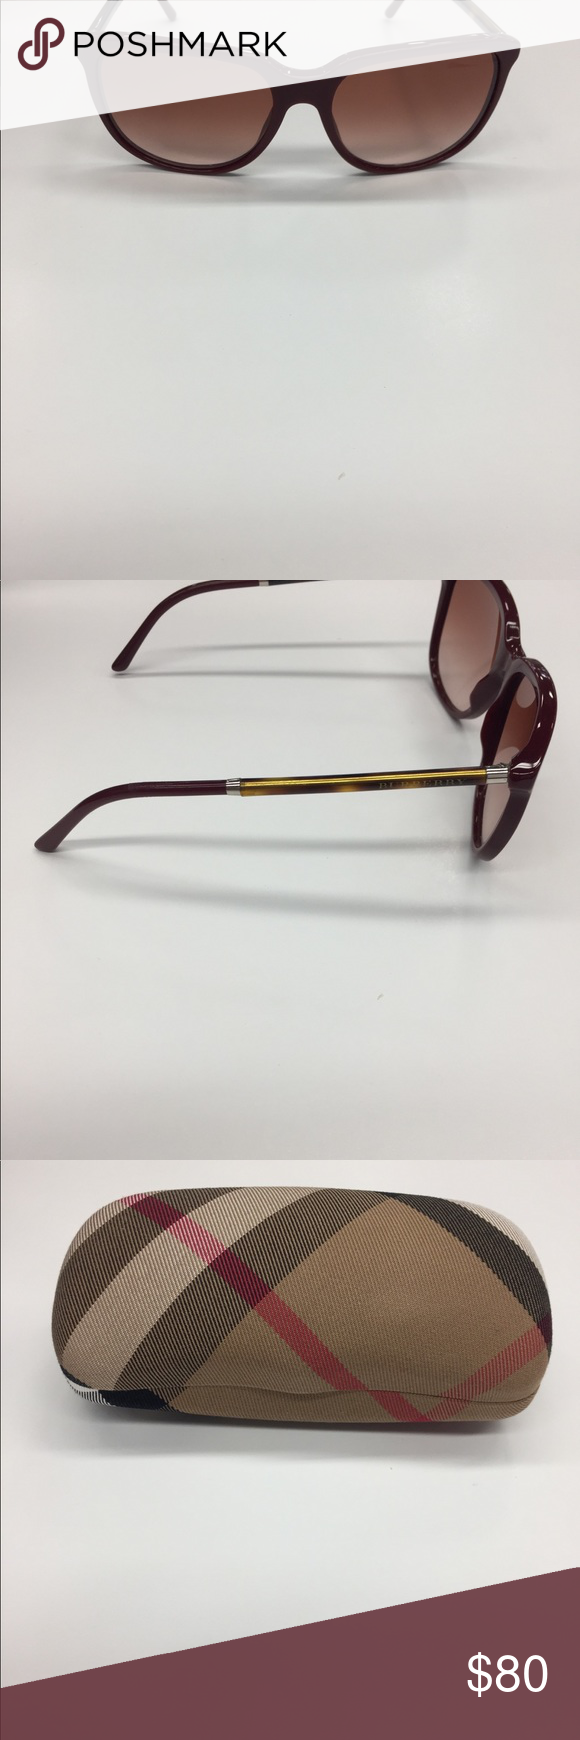 4ed669710b1 Burberry sunglasses Red frame brown lens new with case Burberry Accessories  Glasses